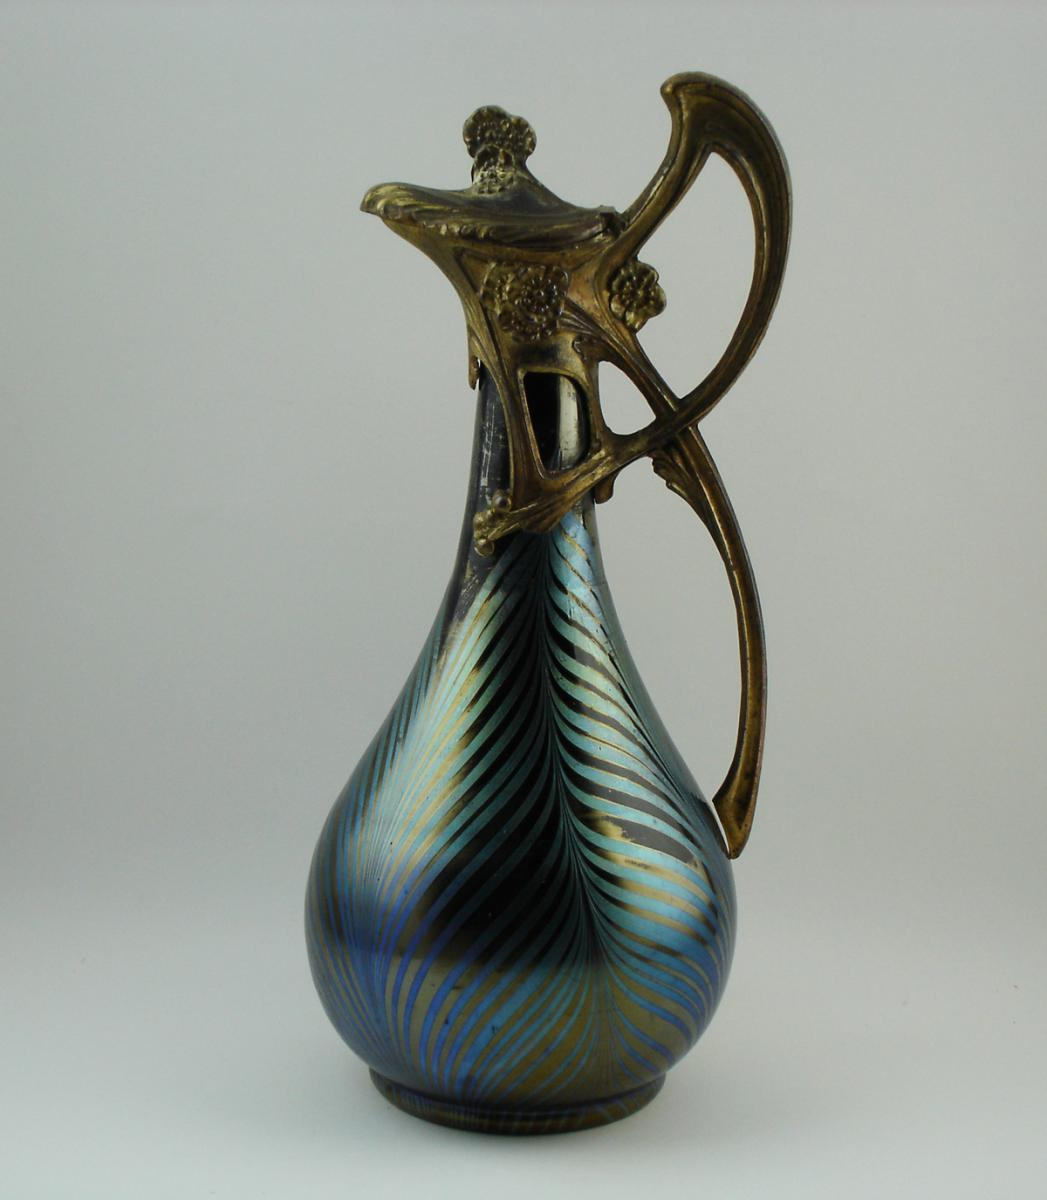 vases and glass objects